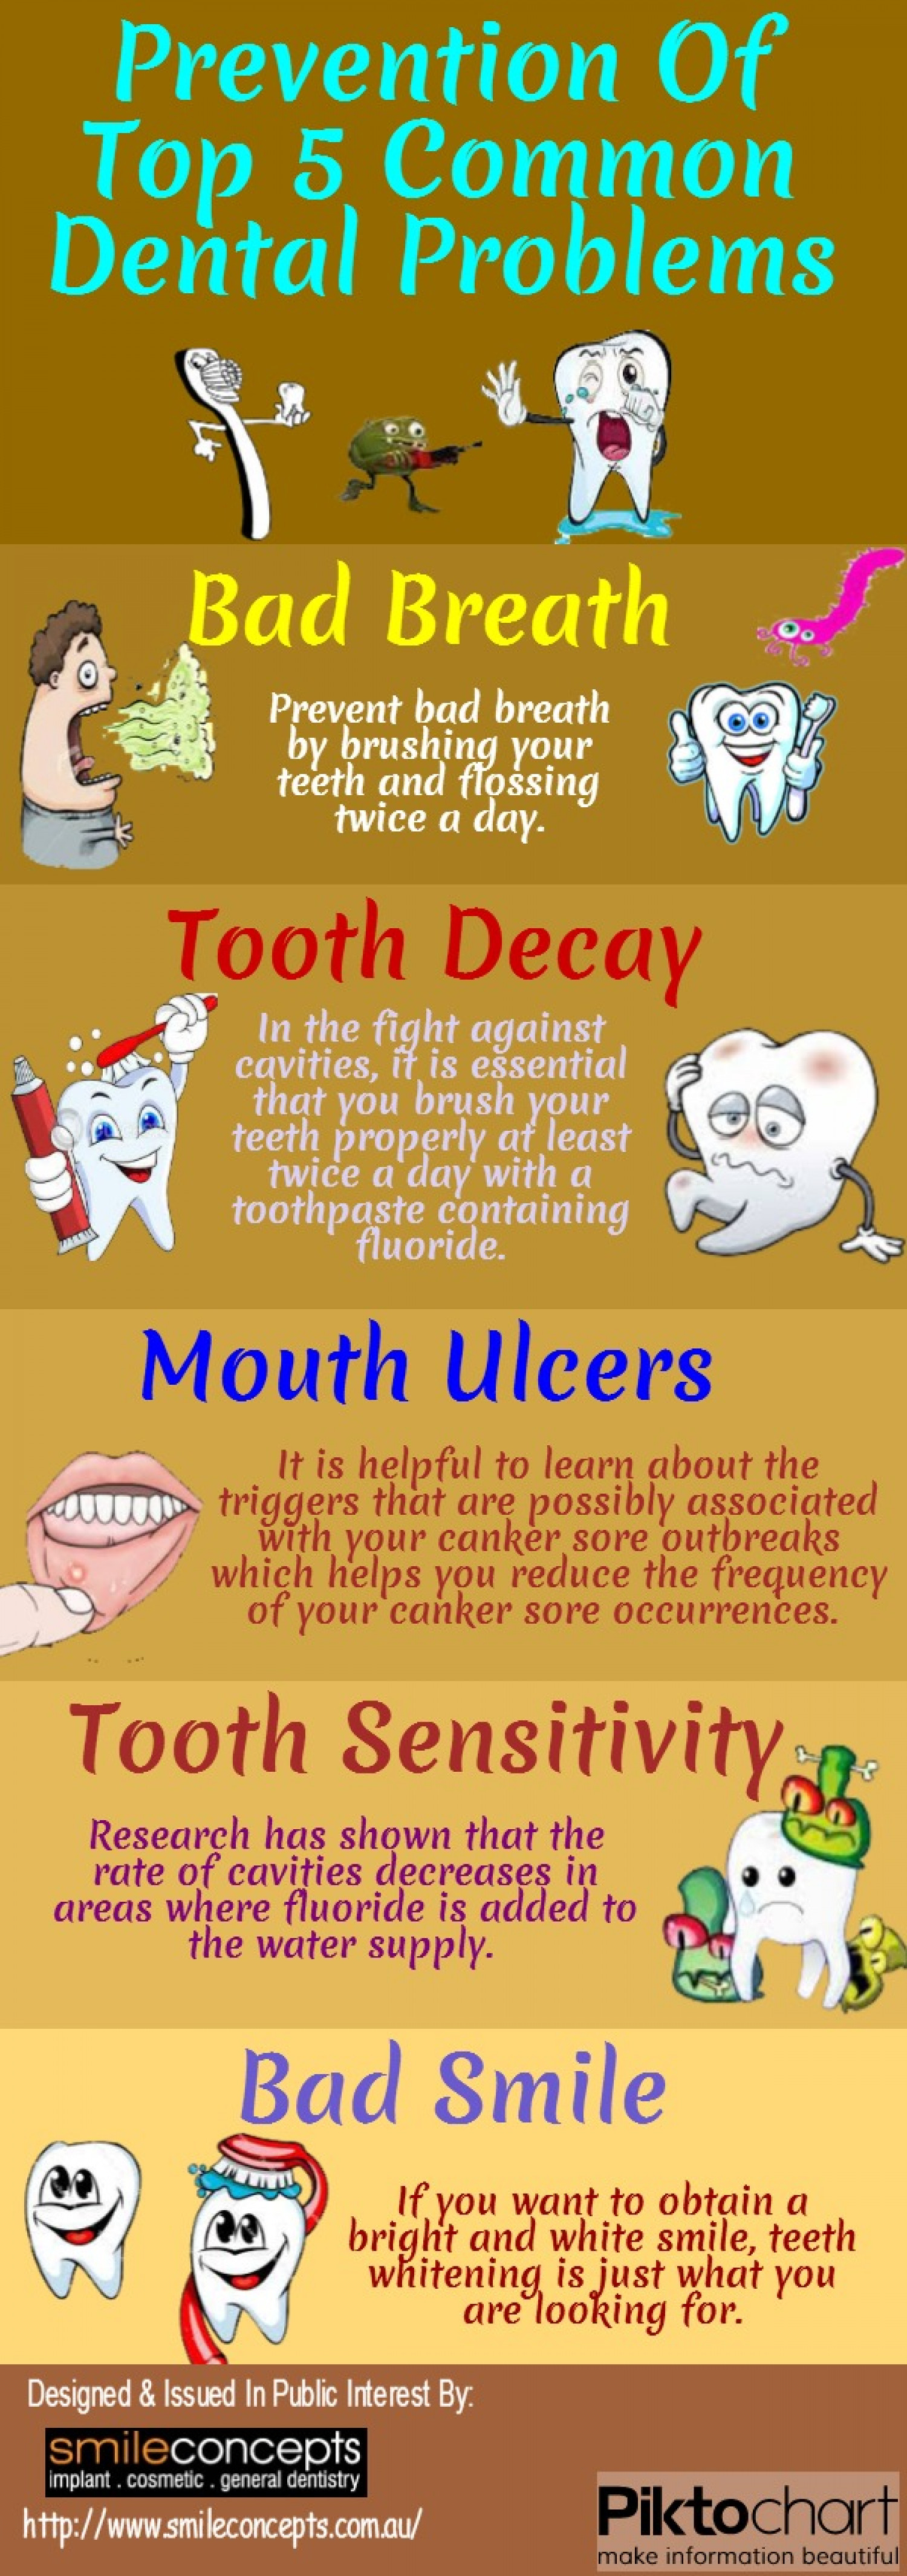 Prevention Of Top 5 Dental Problems Infographic